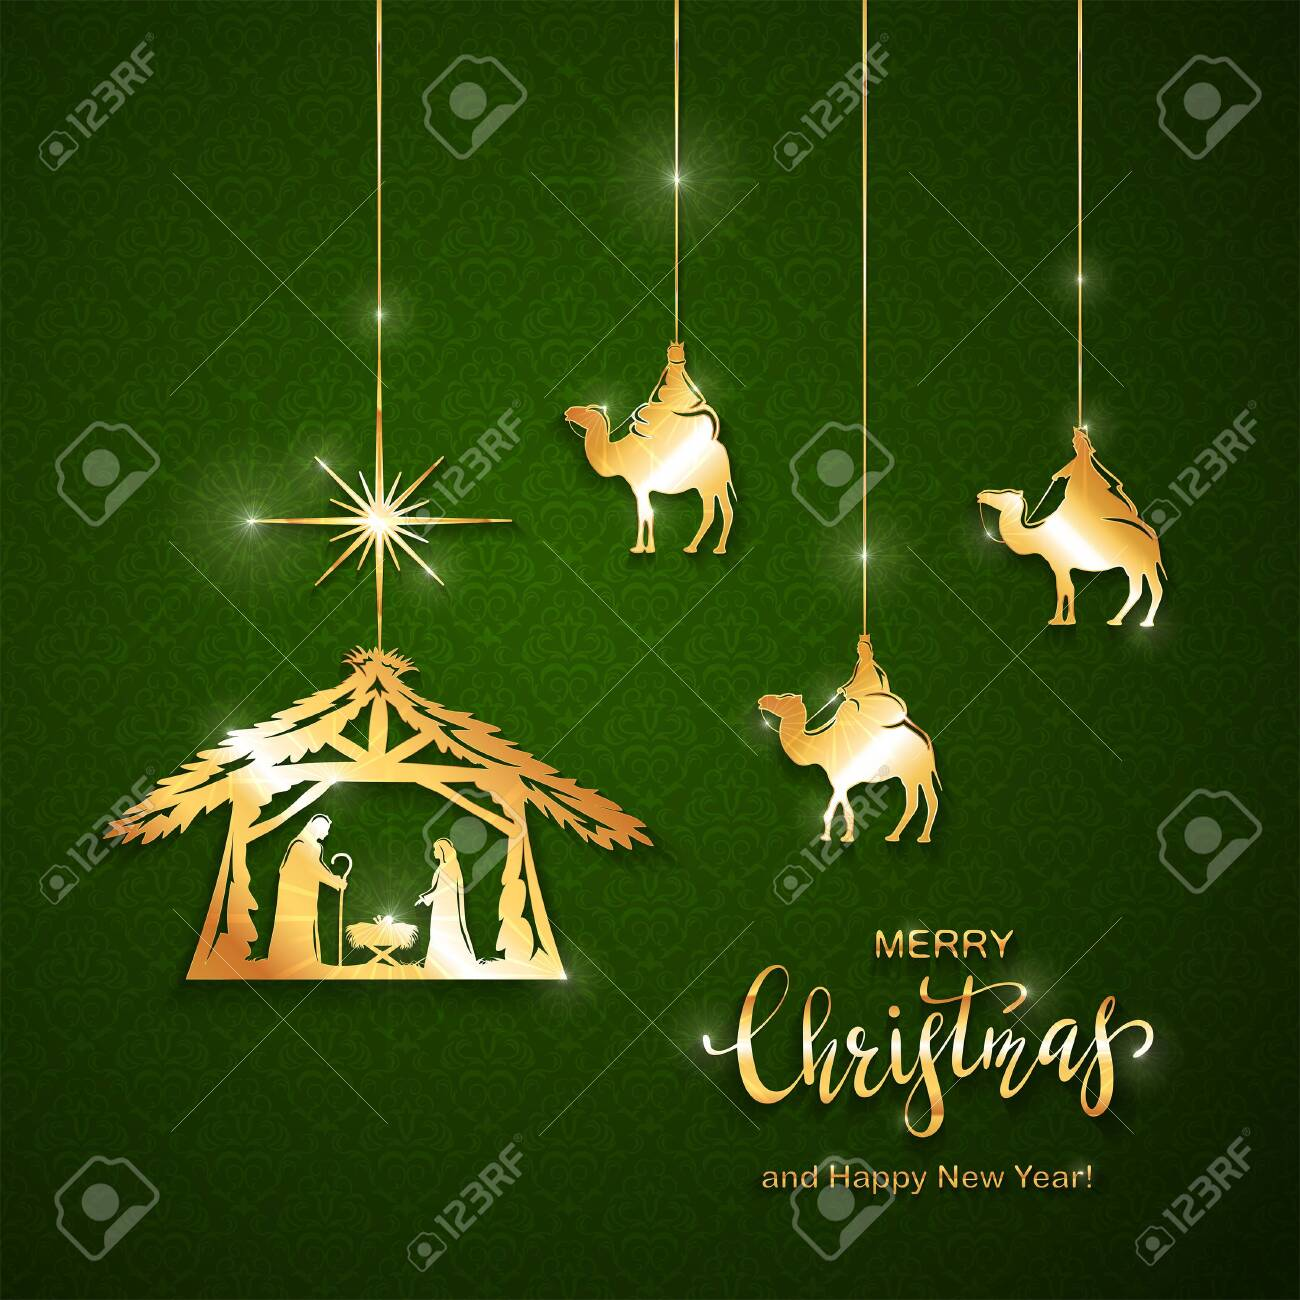 Christian Christmas Theme Golden Elements On Green Background Royalty Free Cliparts Vectors And Stock Illustration Image 134339641